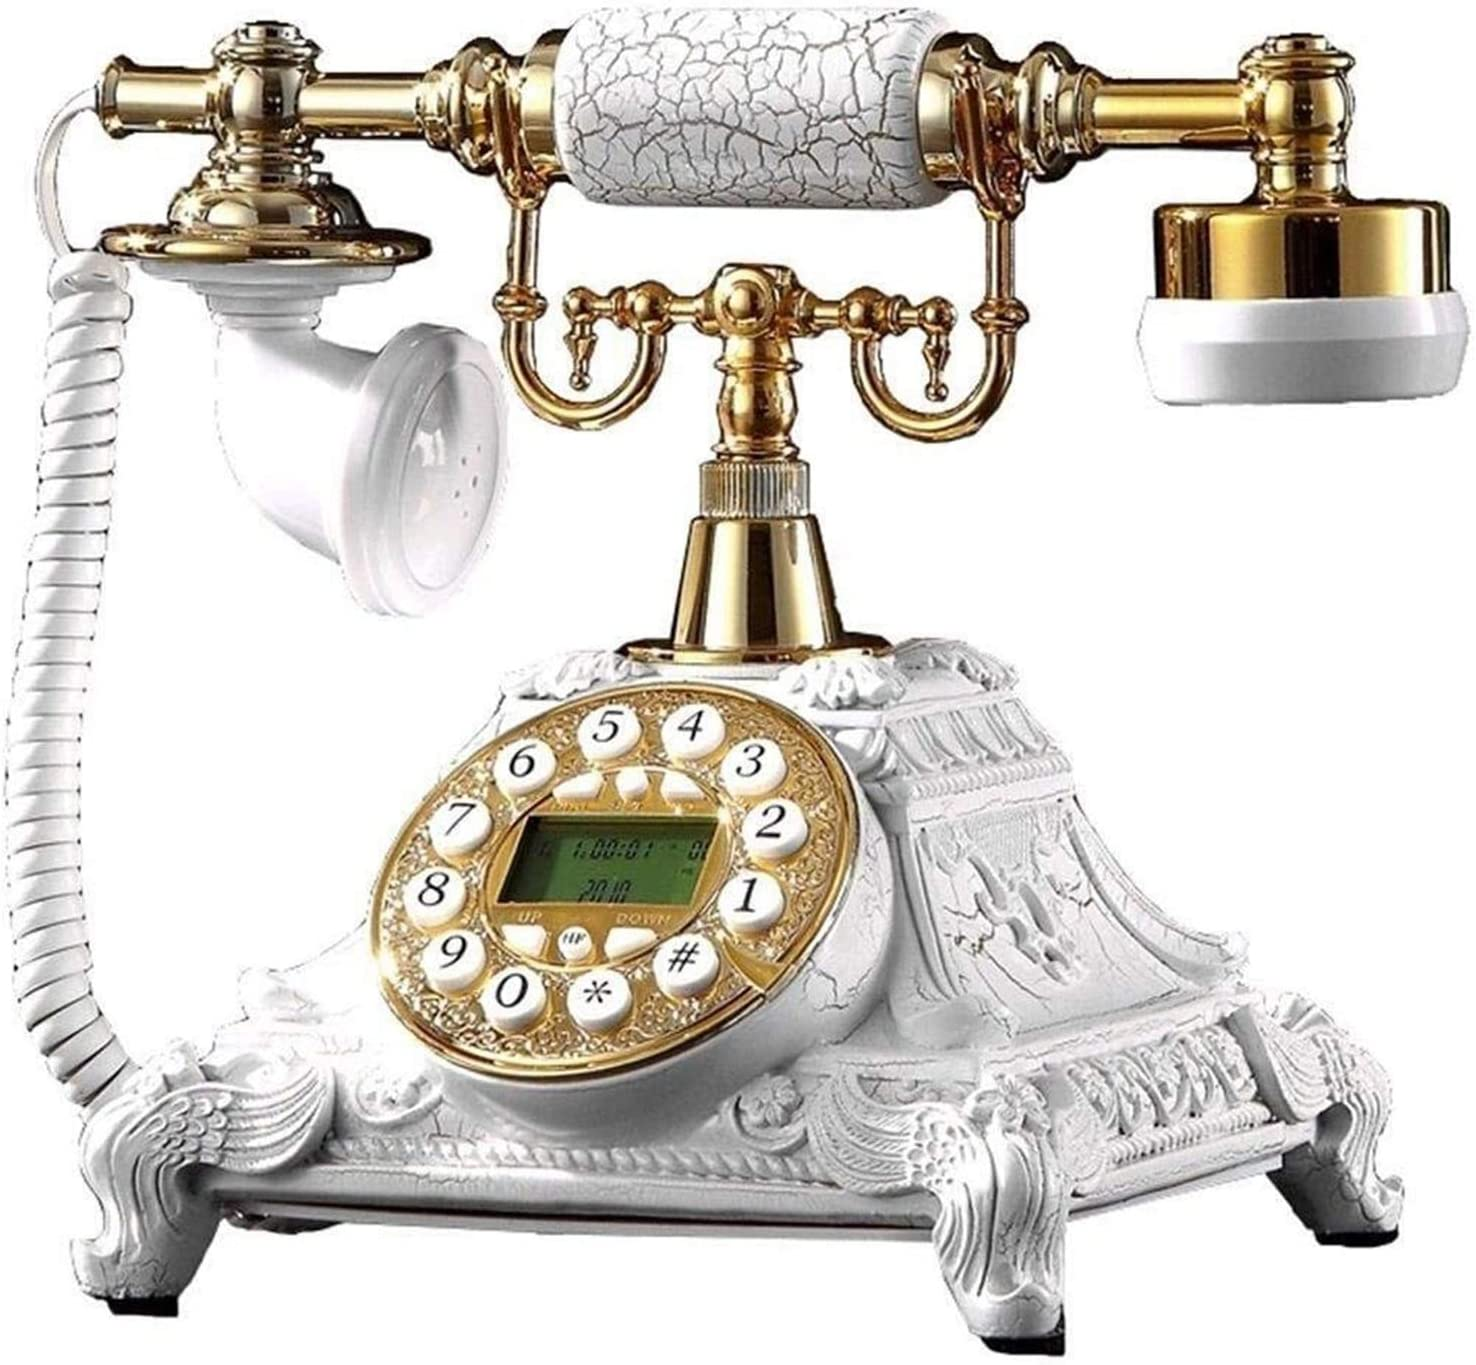 ZHENGYU Vintage Decorate European High order Antique Classic Type Telephone Large special price